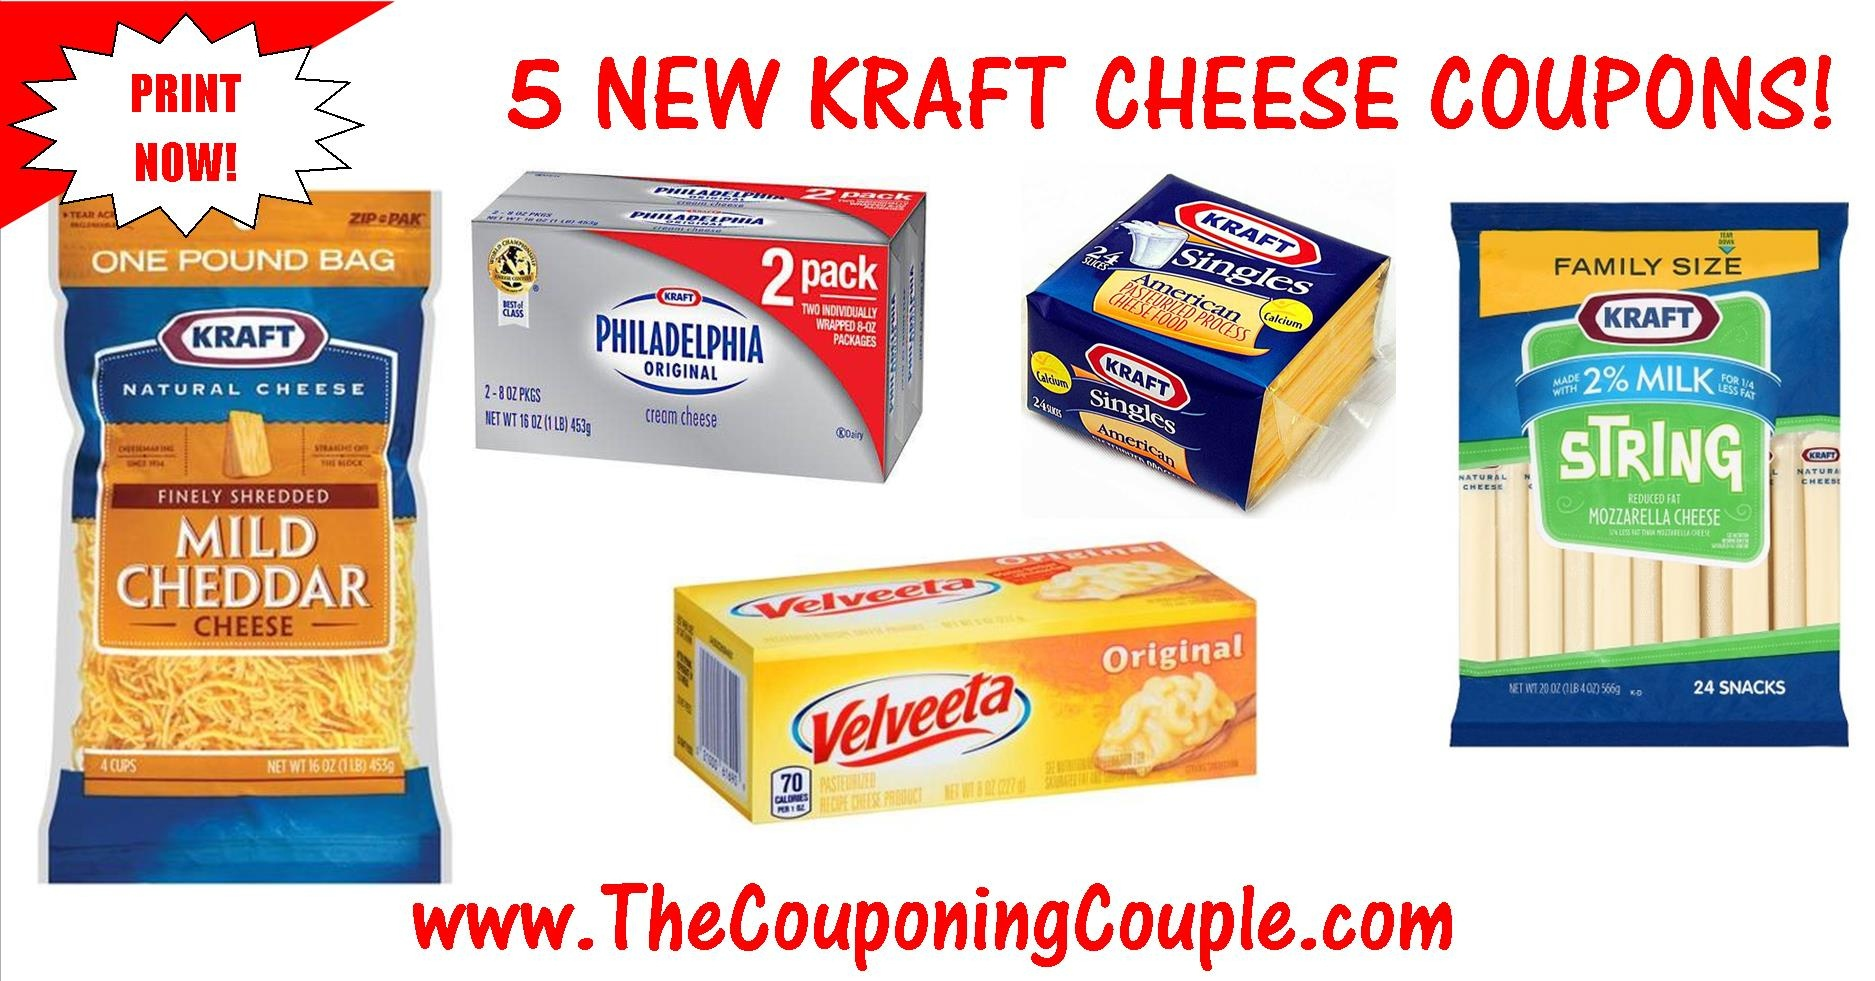 5 New Kraft Cheese Printable Coupons ~ Print Now! - Free Printable Kraft Food Coupons